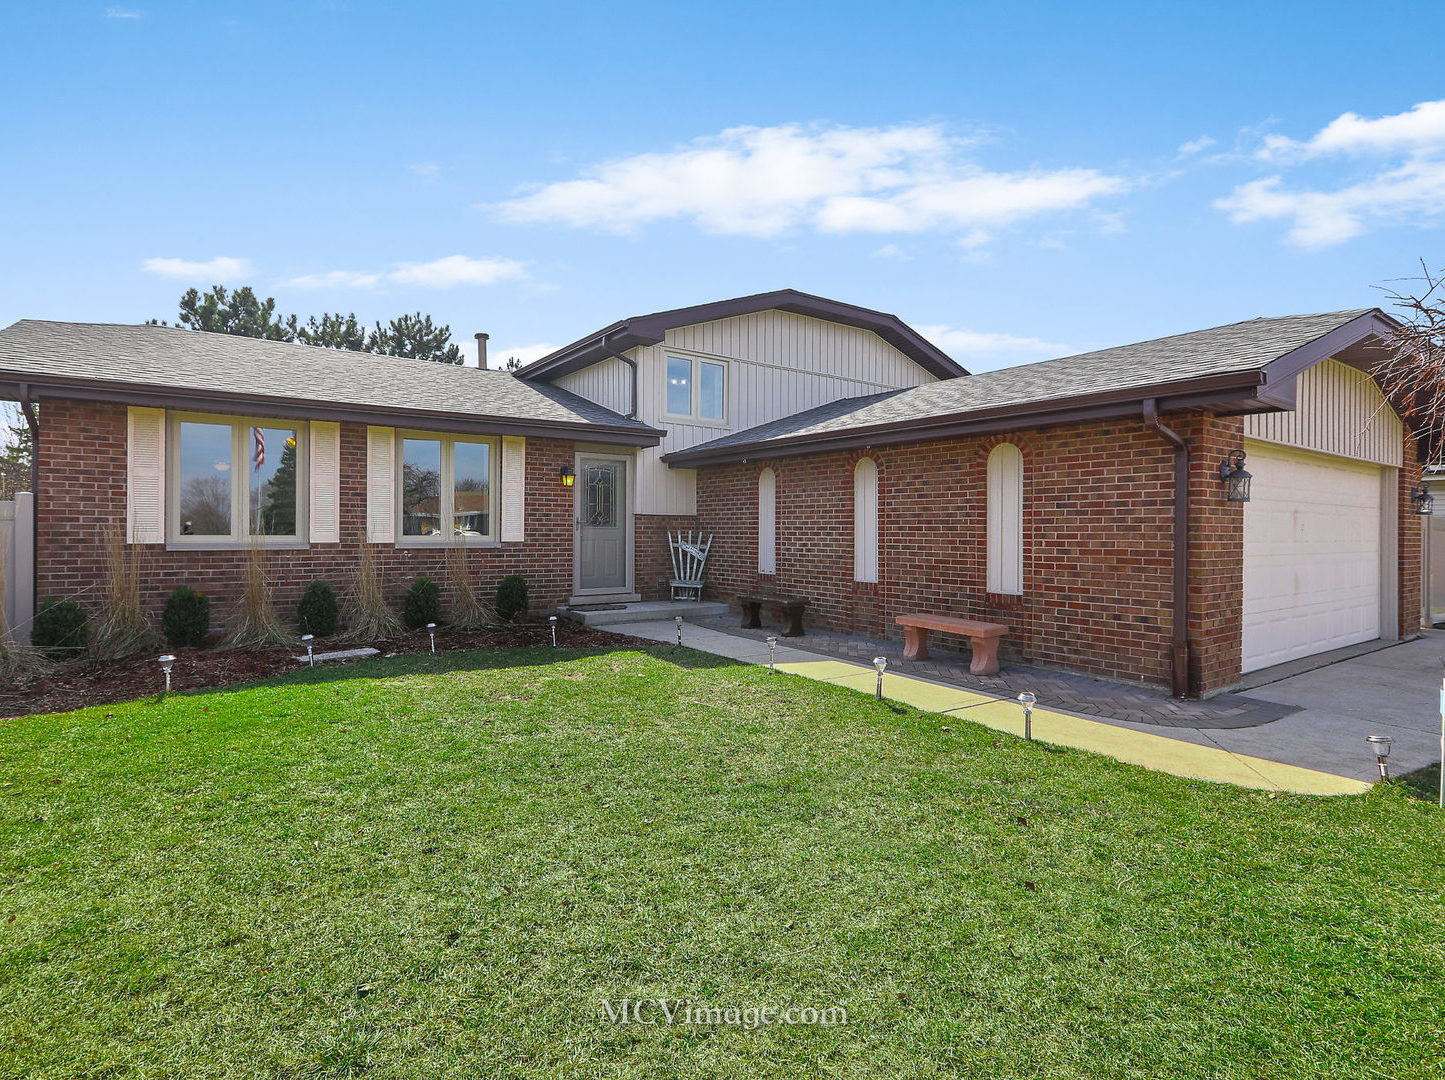 14844 South Cricketwood Drive, Homer Glen in Will County, IL 60491 Home for Sale